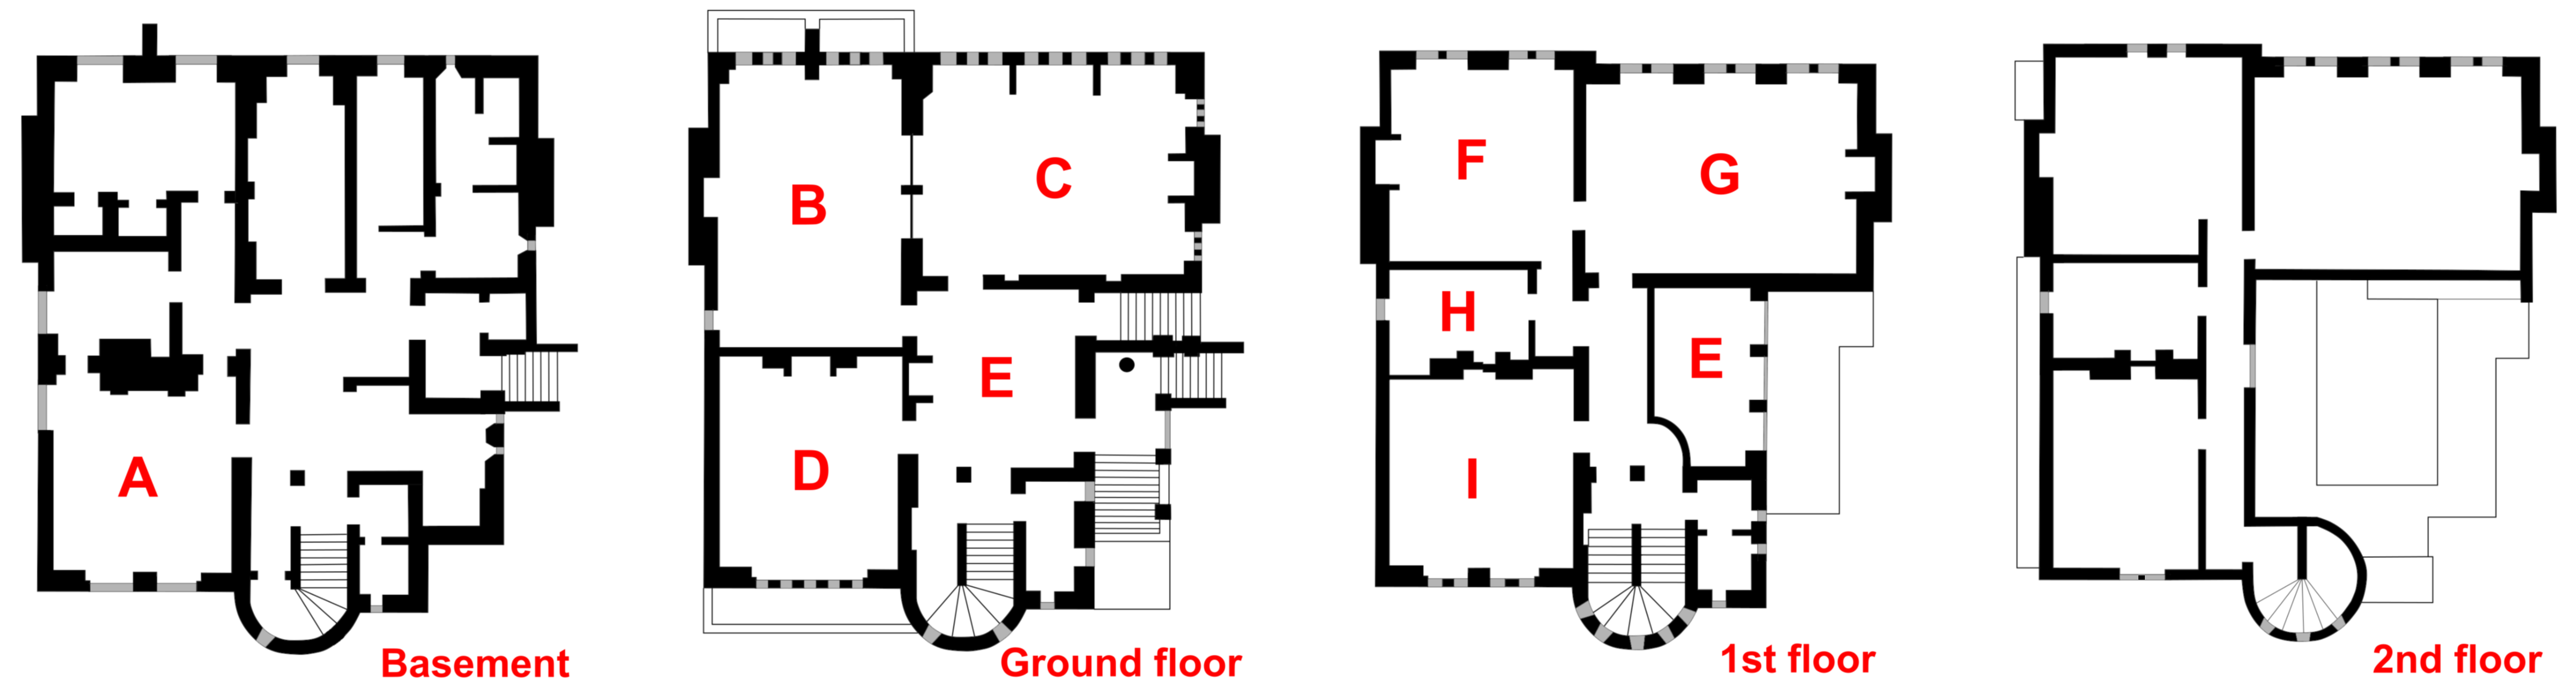 File:Plan Of The Tower House, London.png